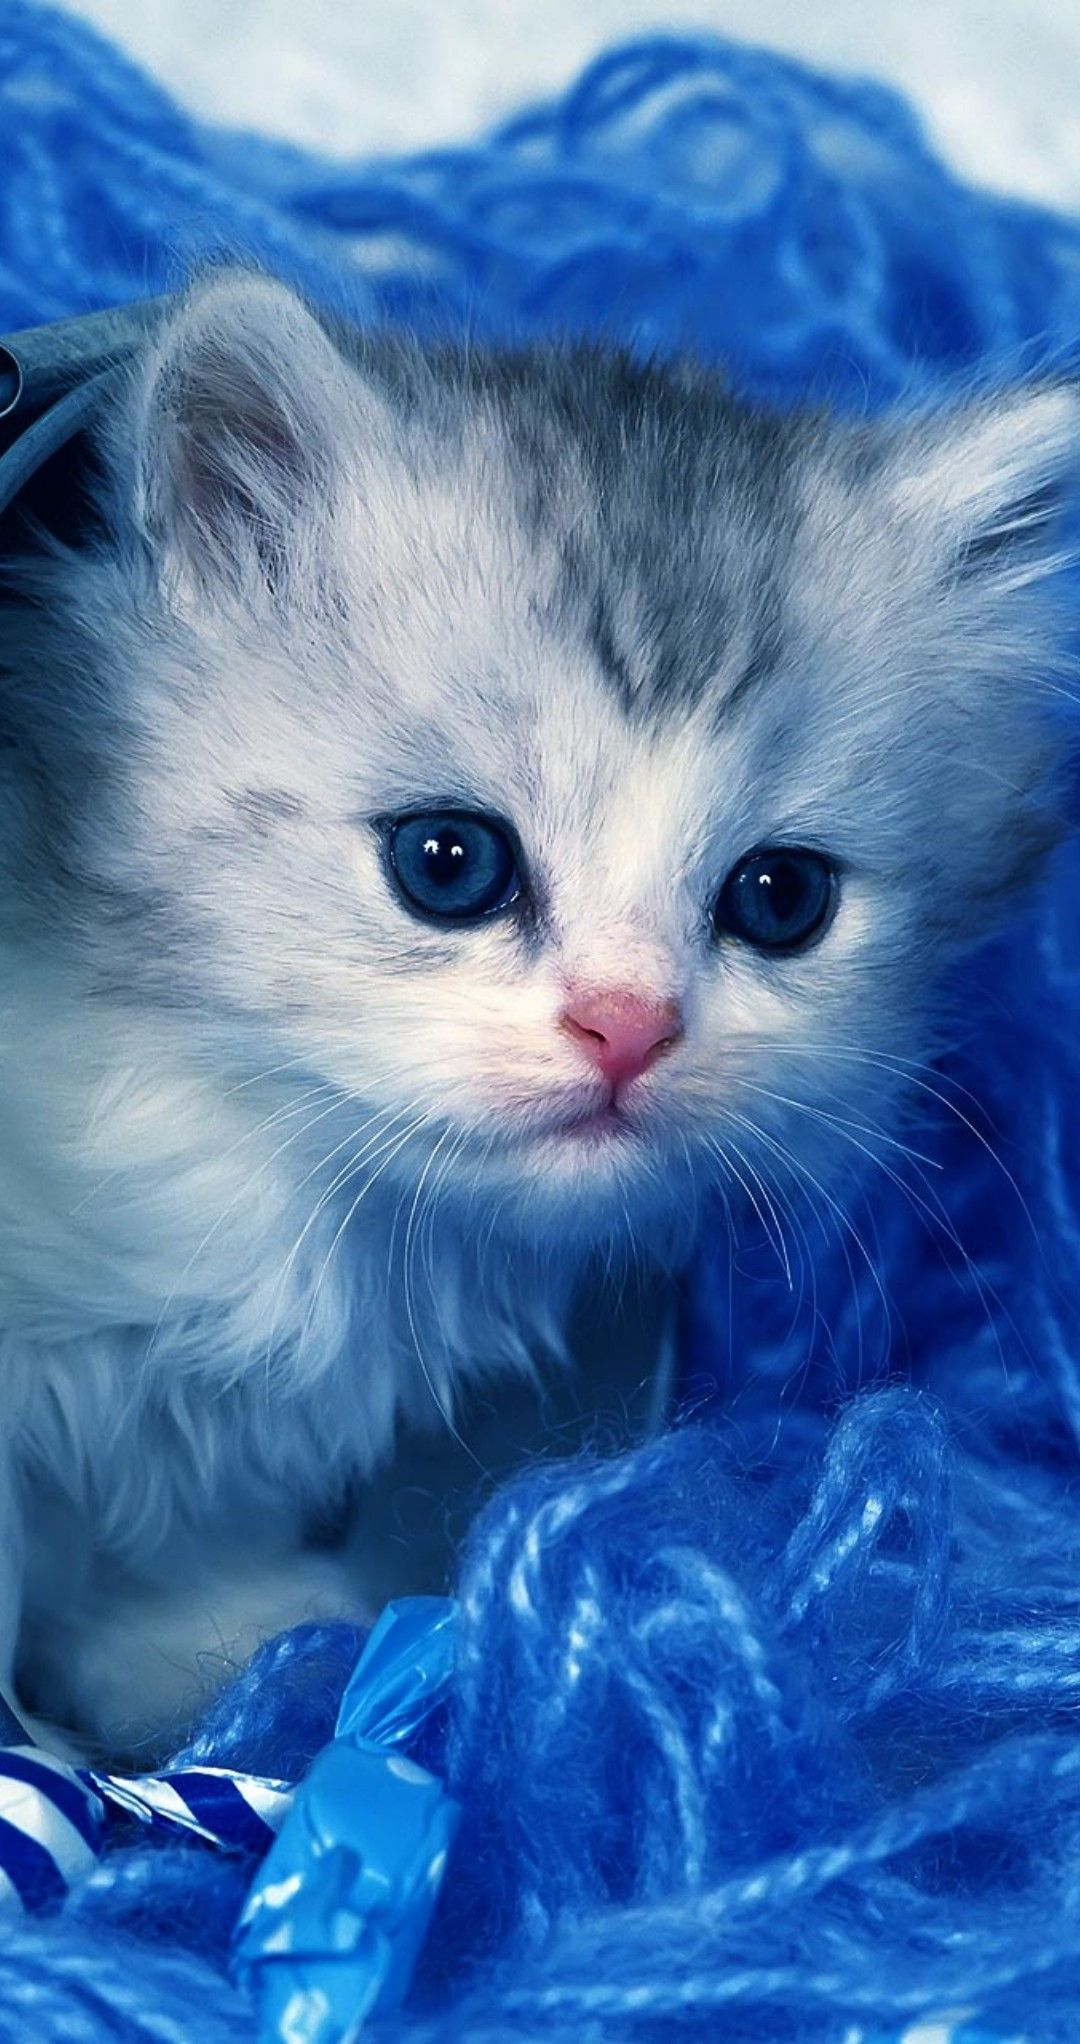 Pin By Gulun Kokusu On Kittens Cute Cats And Kittens Cute Animals Cute Cats